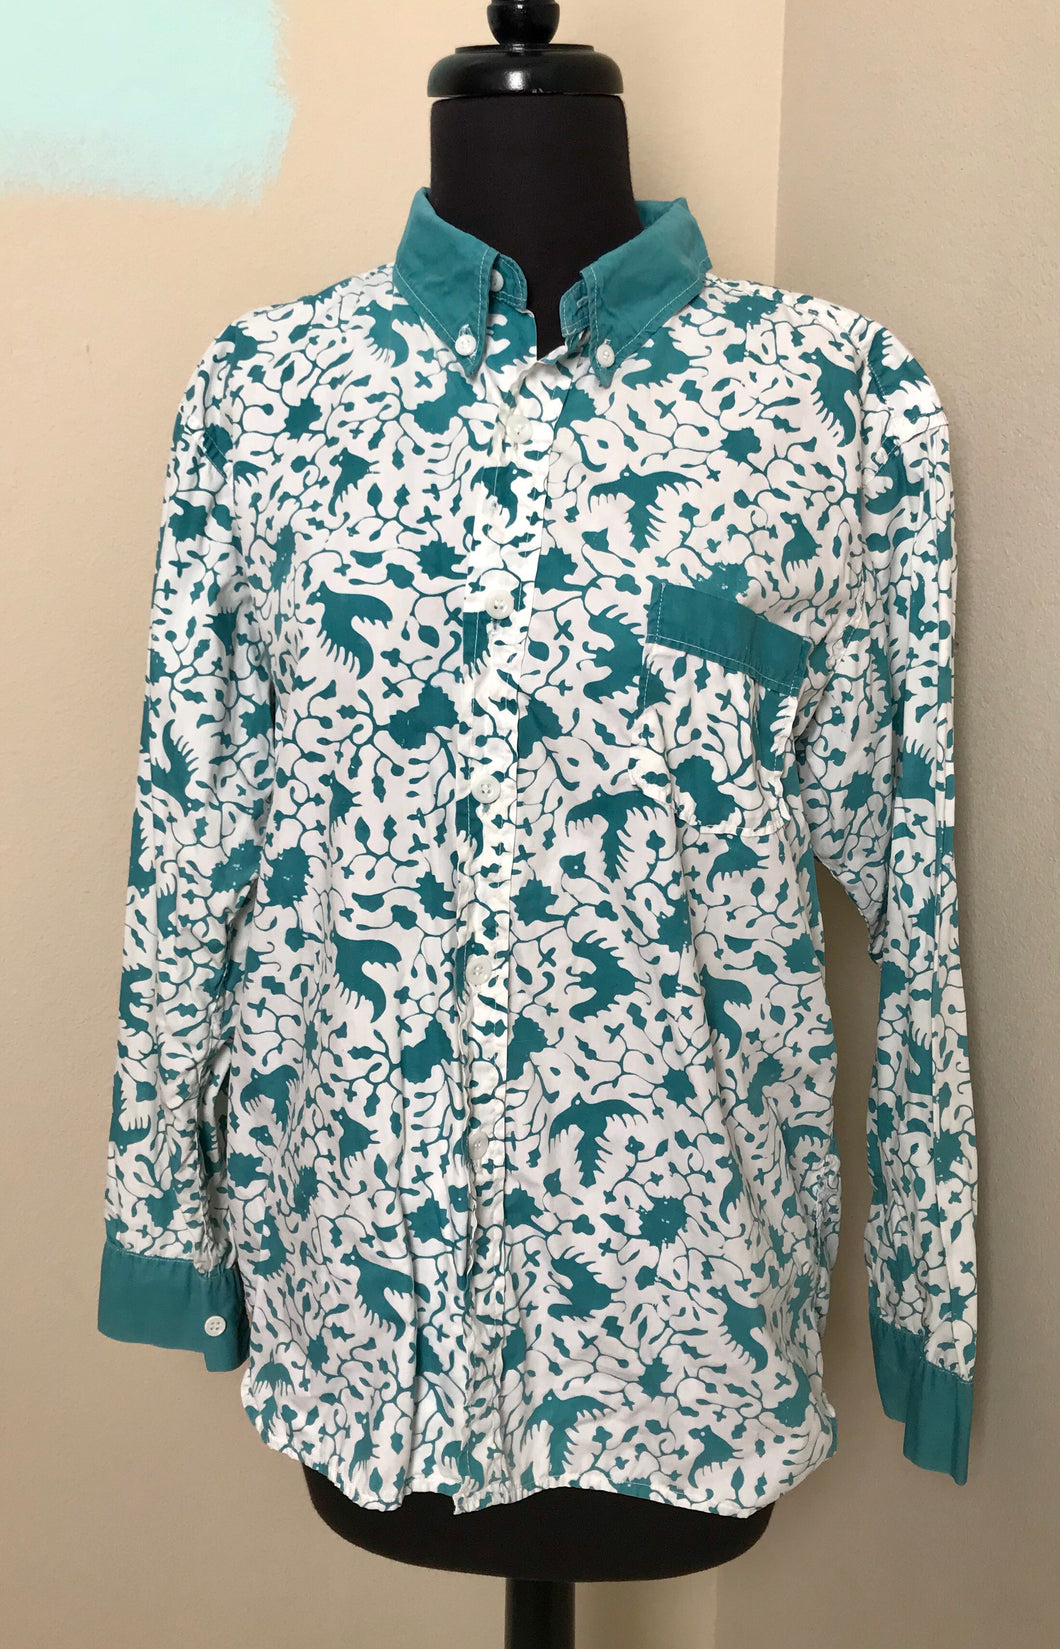 "Bust 44"" - 1960's Button up Shirt - Bird Print in Teal"